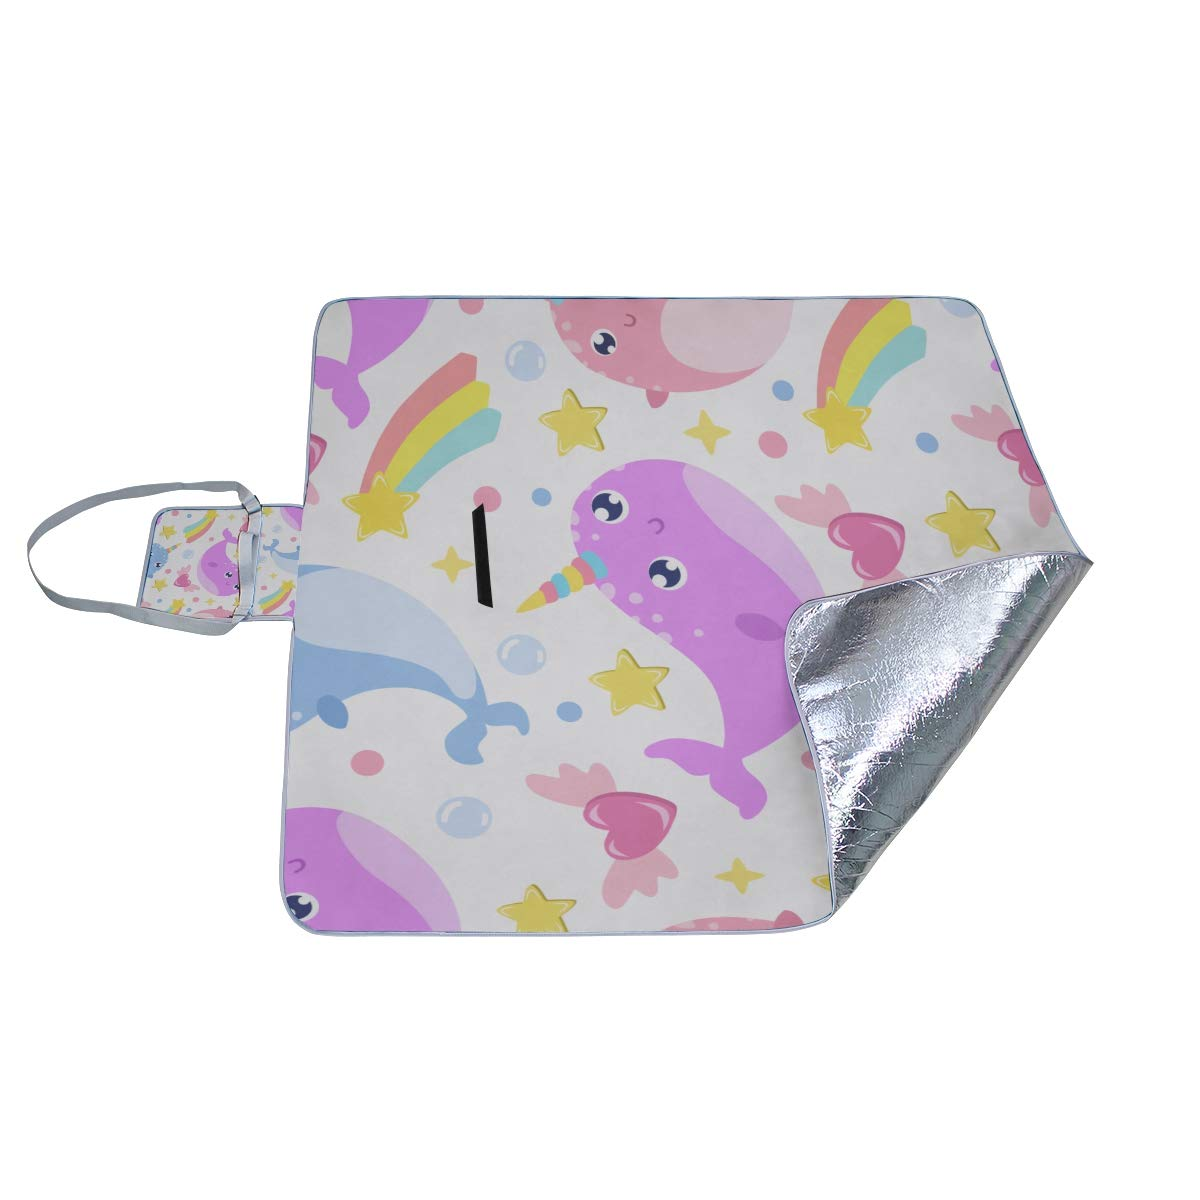 Amazon.com: Family Picnic Blanket Handy Tote Bay Narwhal ...